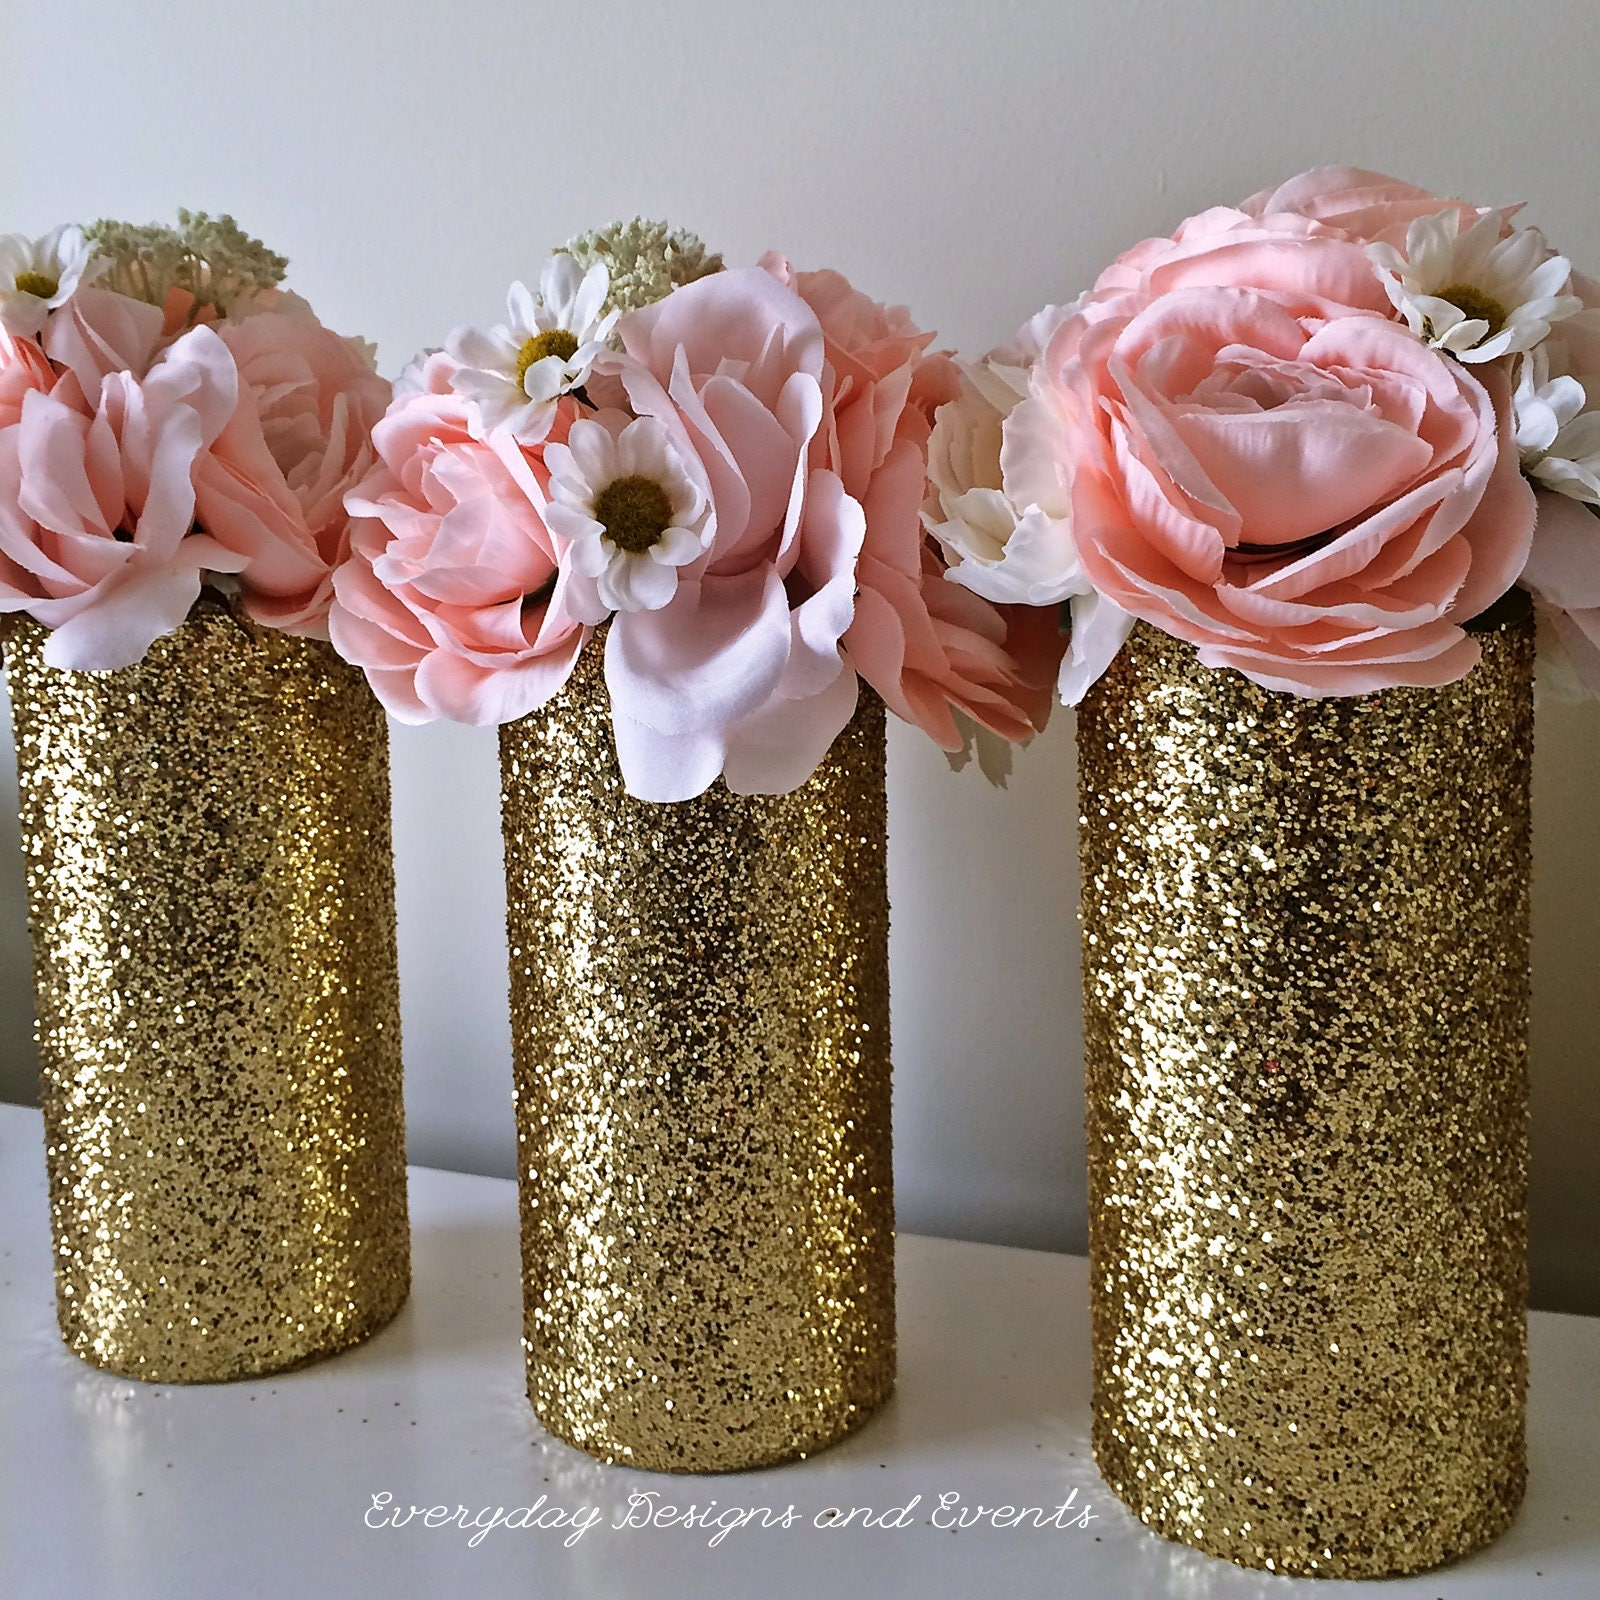 Gold Wedding Centerpiece Decorations: 3 Gold Wedding Centerpiece Wedding Decorations Gold Glitter